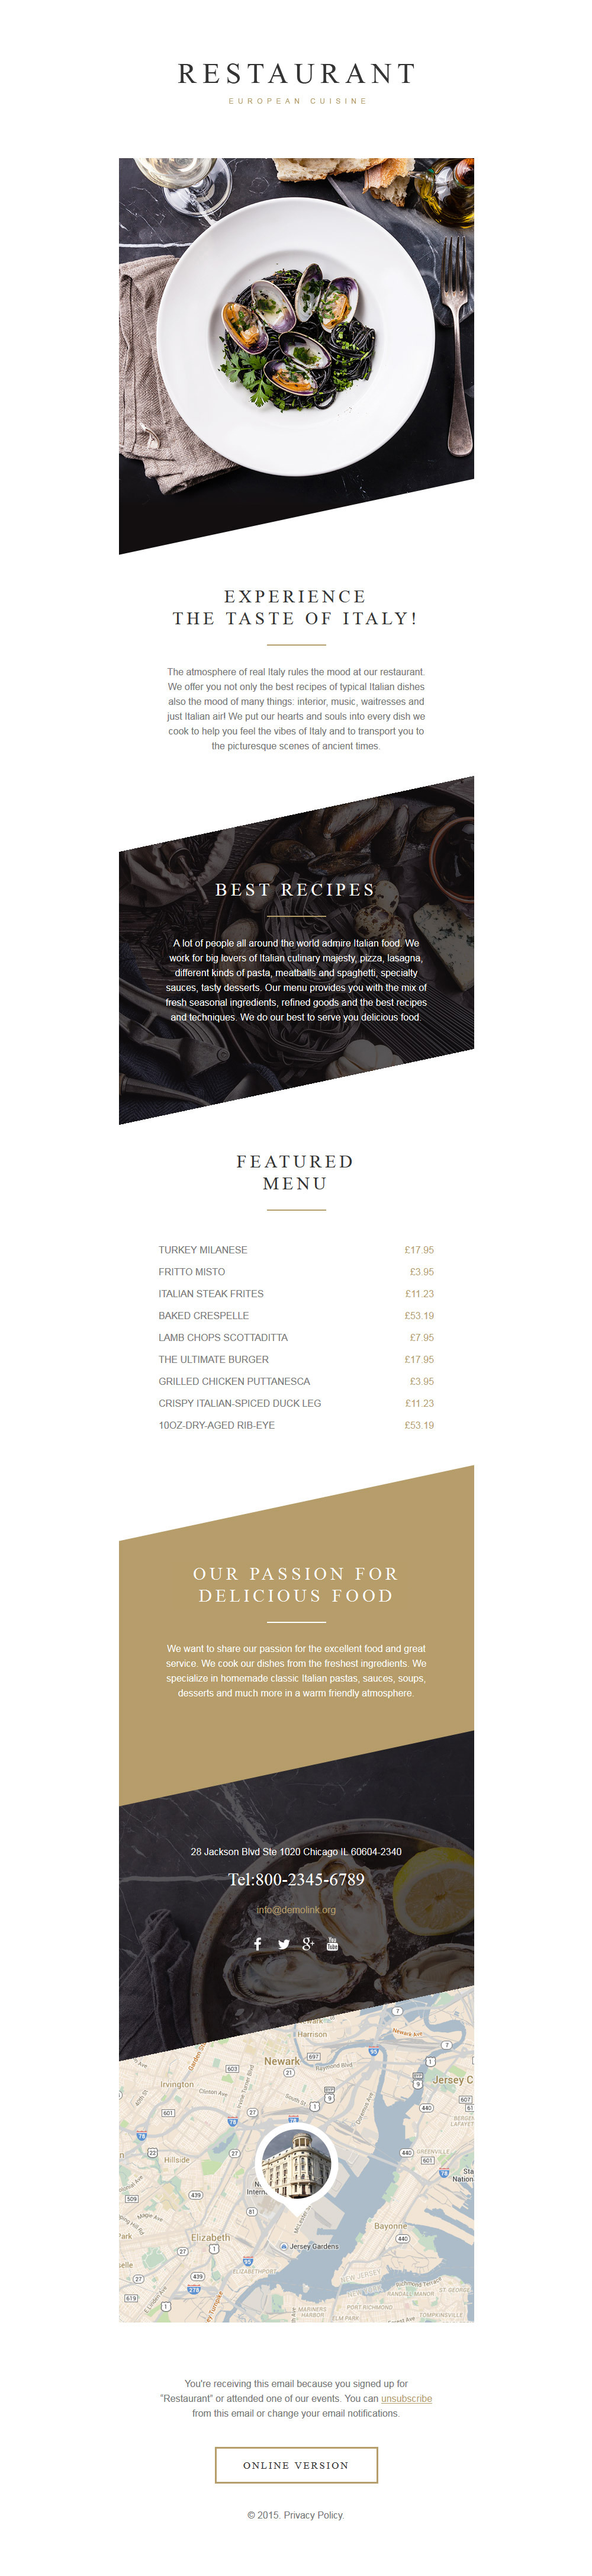 cafe and restaurant newsletter template 57923 templates com